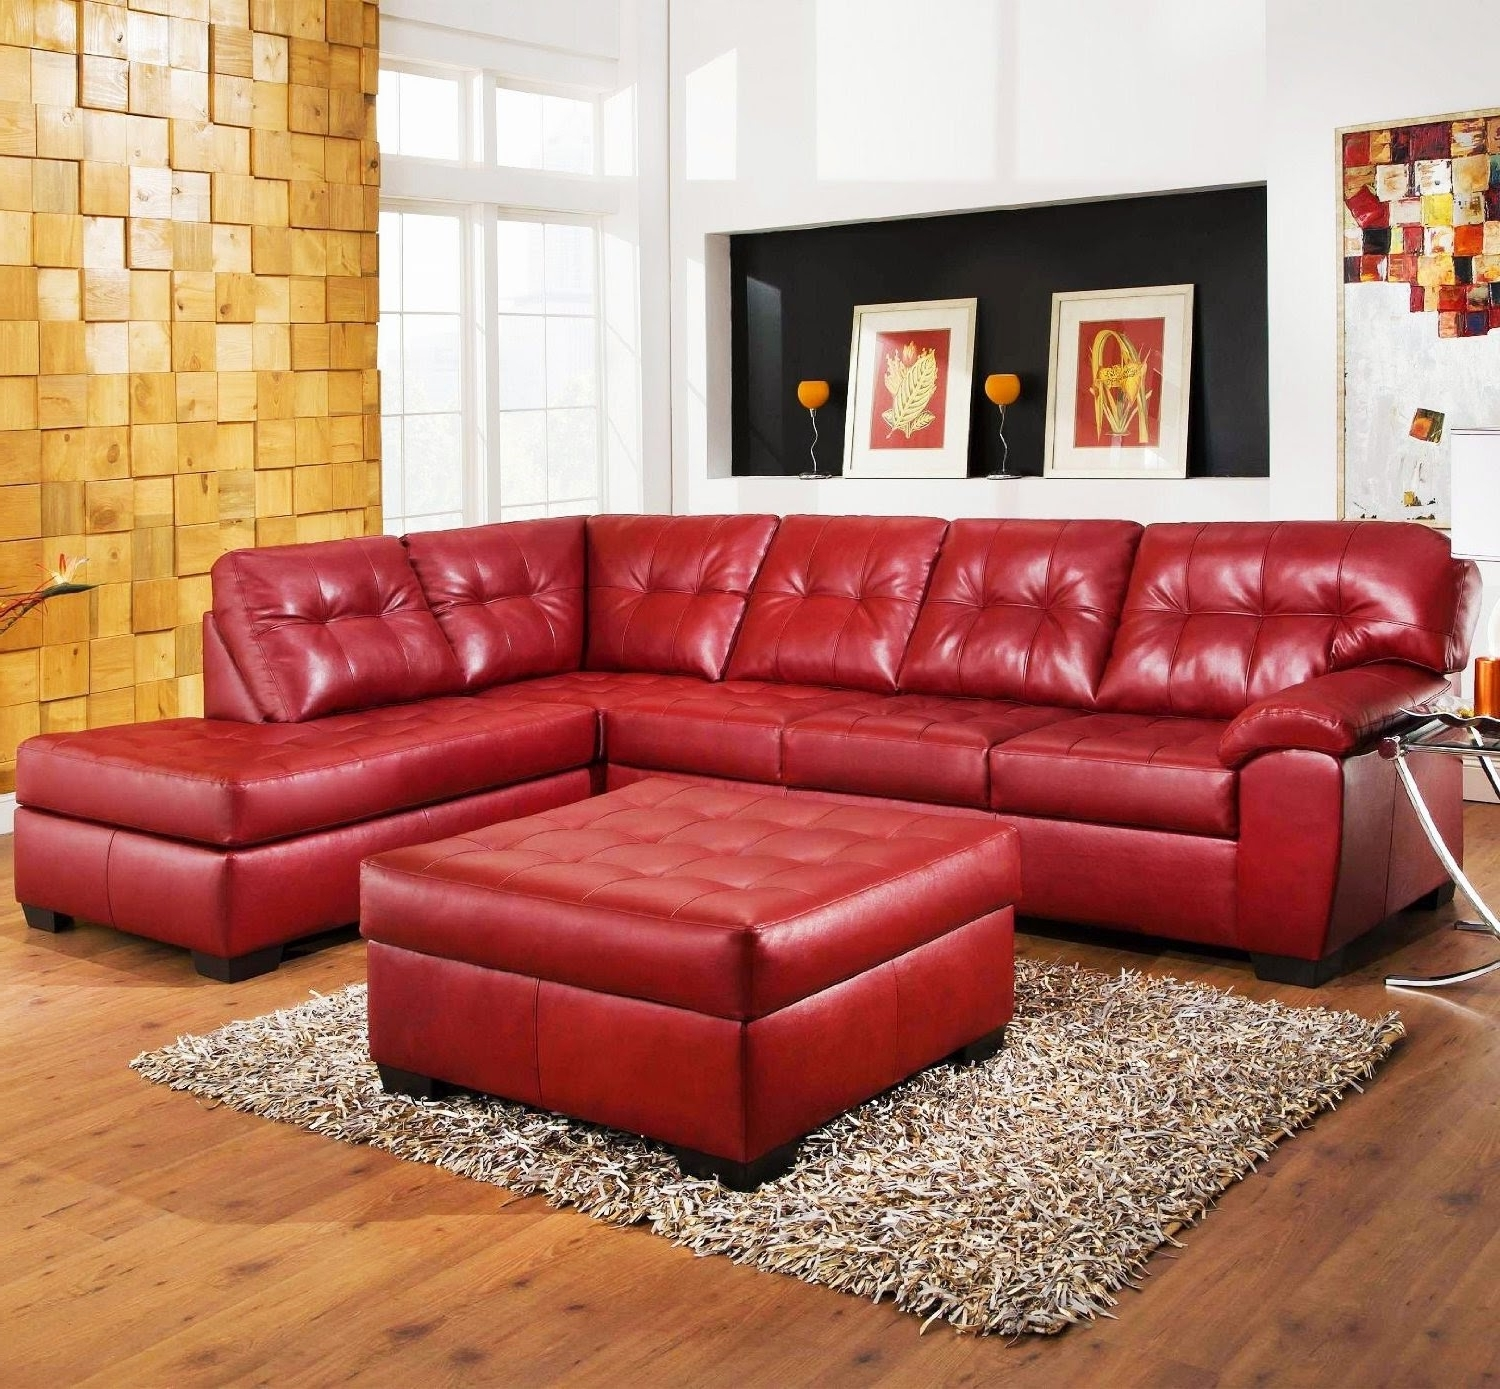 Well Known Astonishing Red Couch Leather Pict Of Sofa Concept And Natuzzi Throughout Red Leather Couches (View 13 of 15)